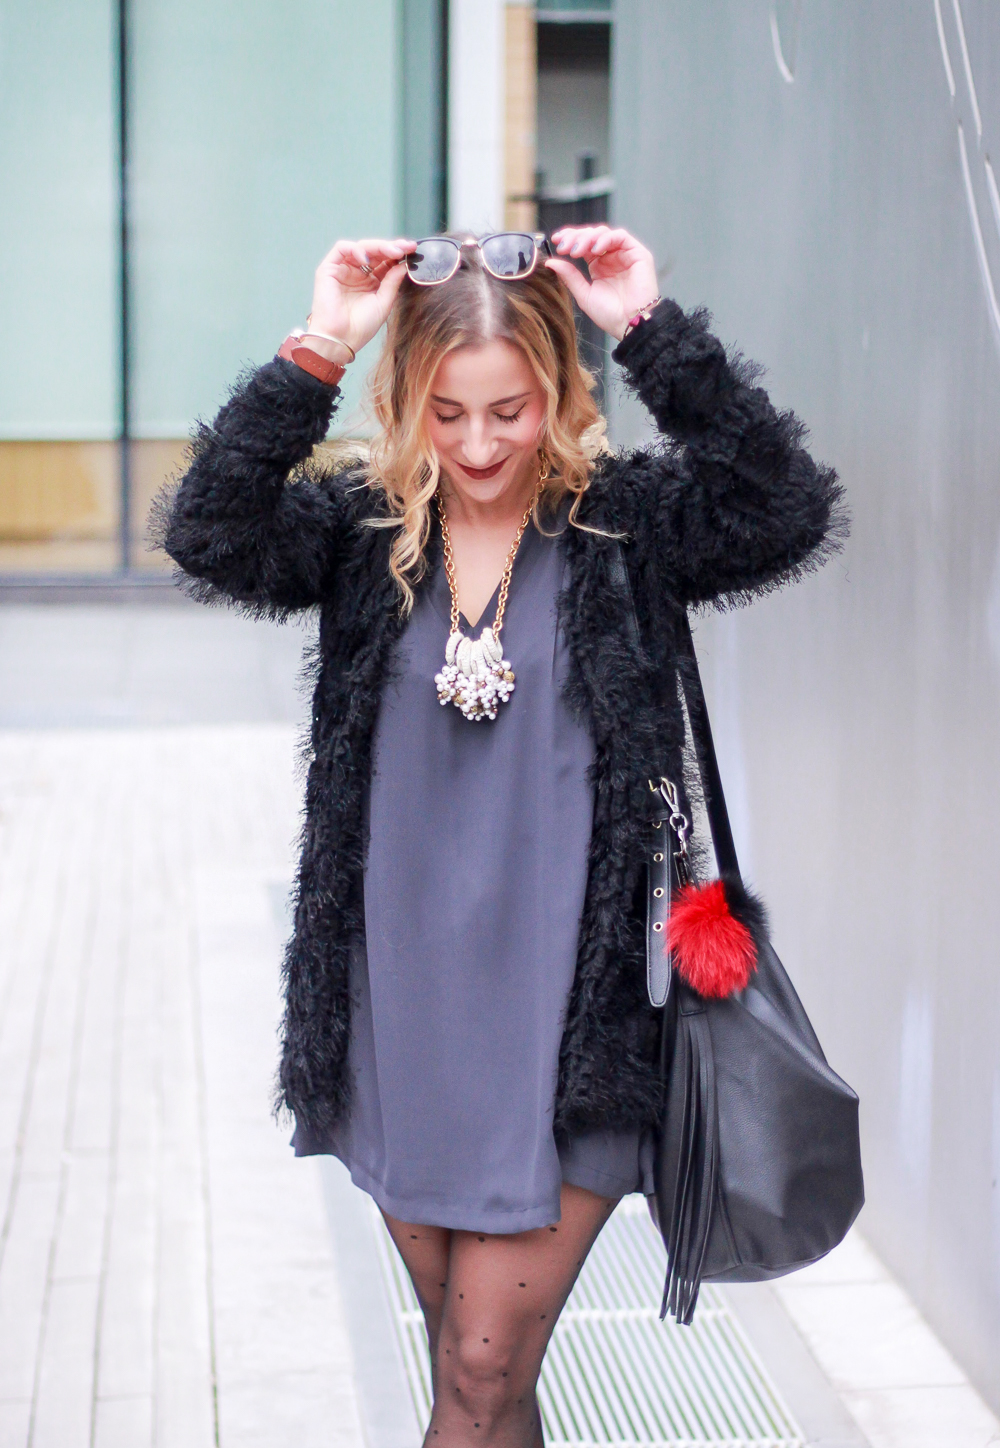 Toronto fashion and lifestyle blogger, Jackie Goldhar, wearing a furry black coat, simple dress and a gold statement necklace to a holiday brunch